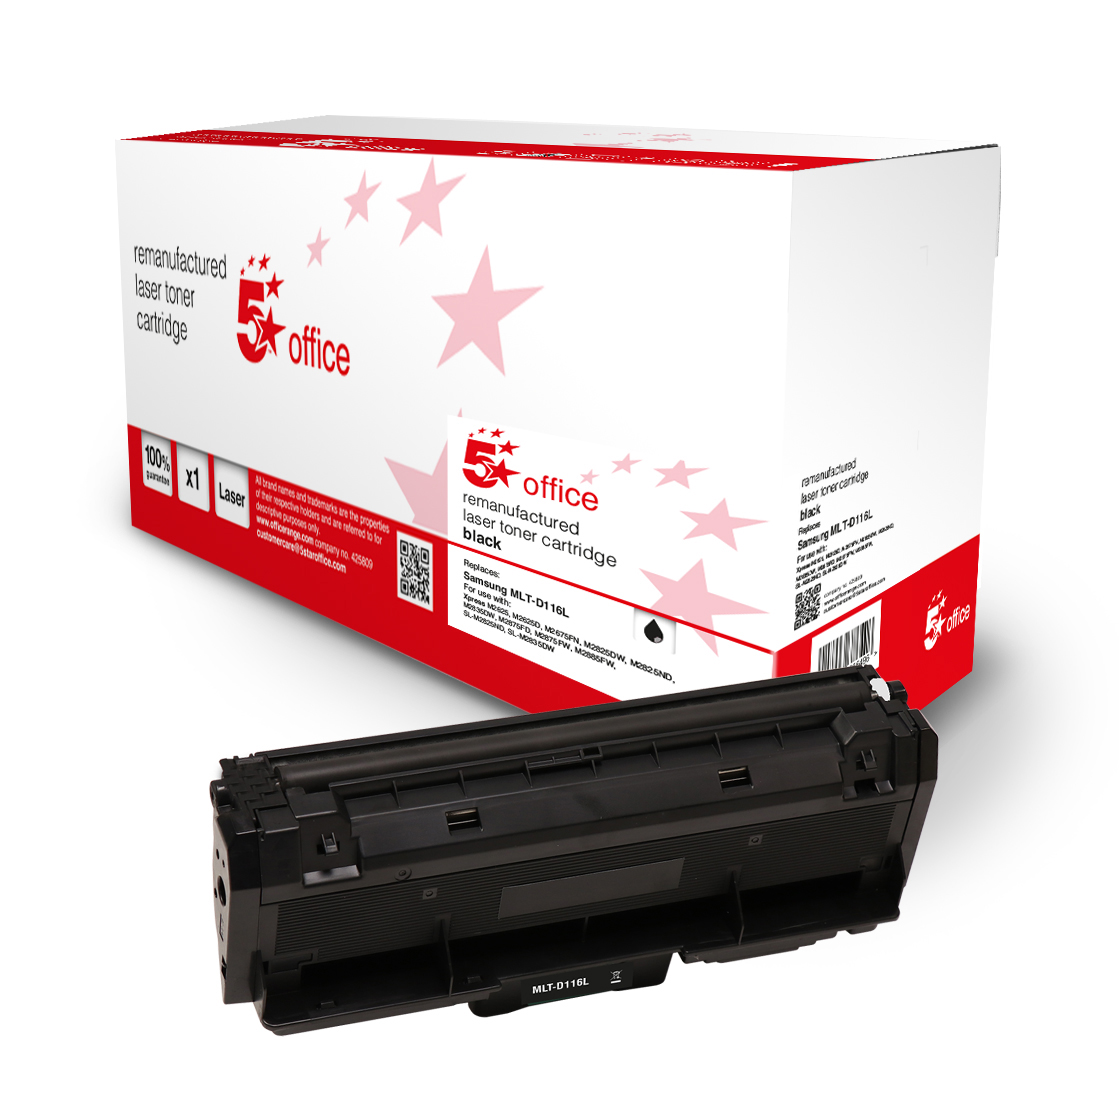 5 Star Office Remanufactured Toner Cartridge Page Life Black 3000pp Samsung SU828A Alternative